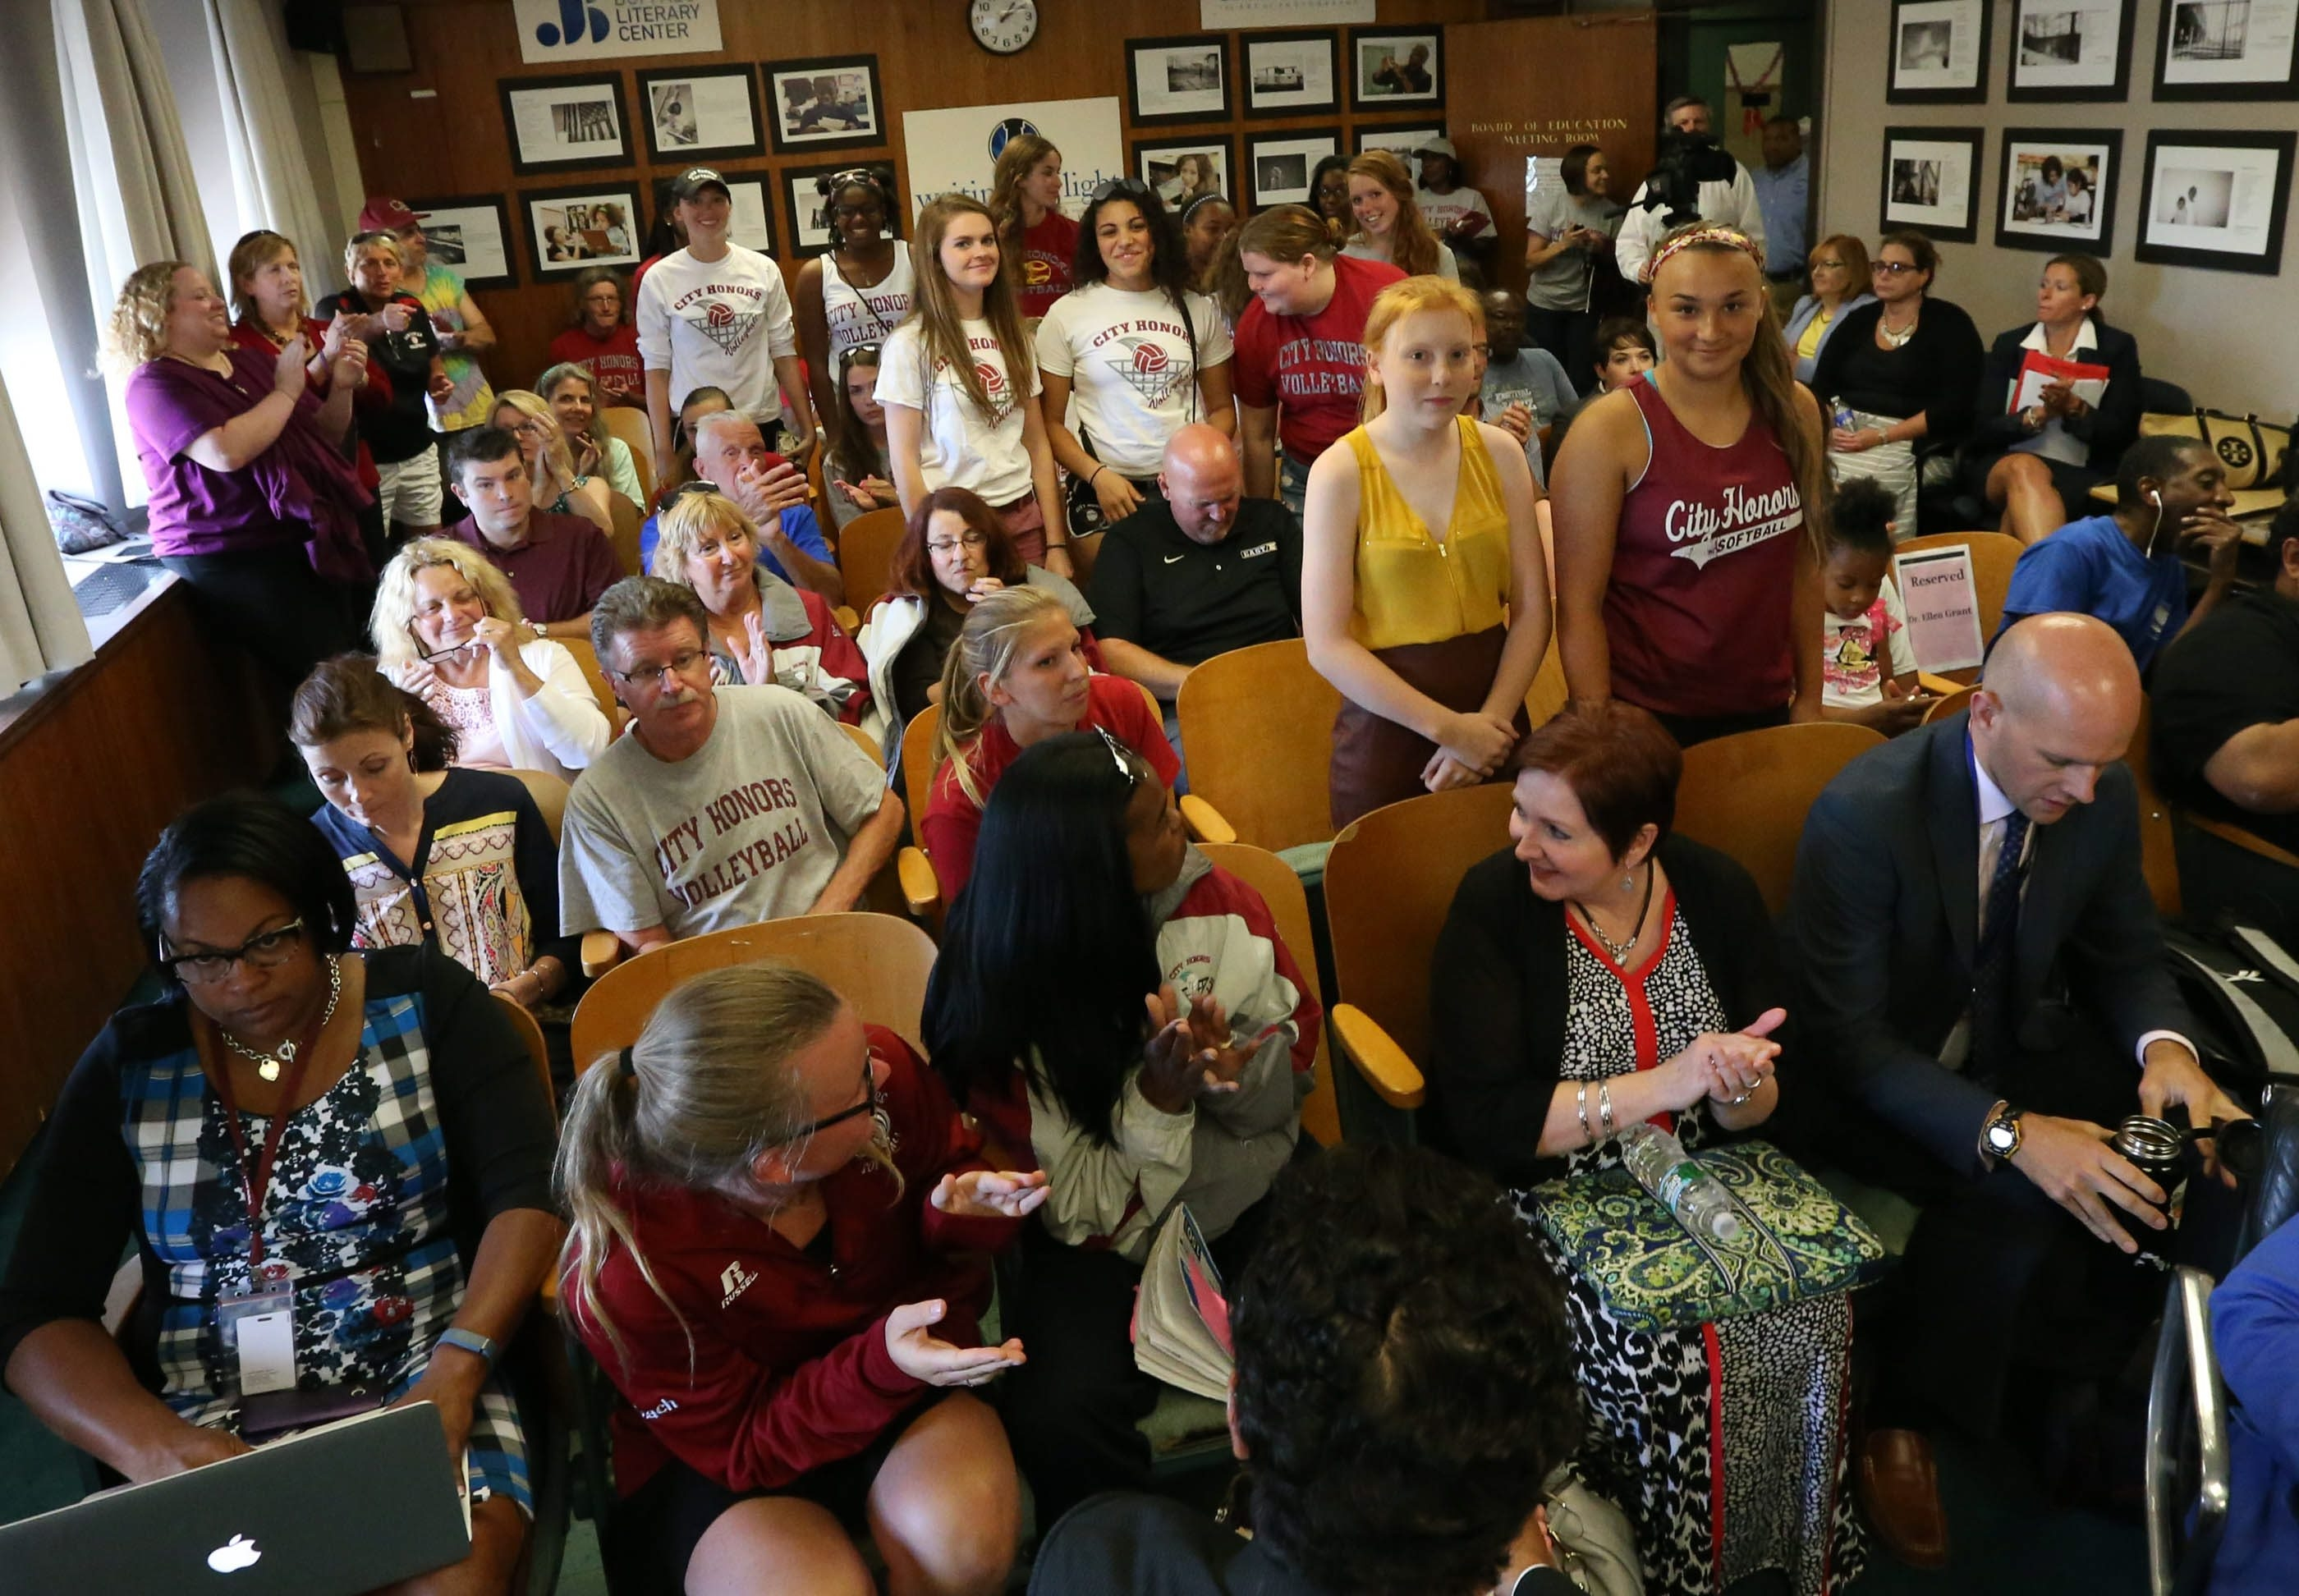 City Honors students and parents showed support for volleyball coach Deb Matos during a school board meeting at City Hall in Buffalo,NY on Tuesday, July 21, 2015.  (James P. McCoy/ Buffalo News)